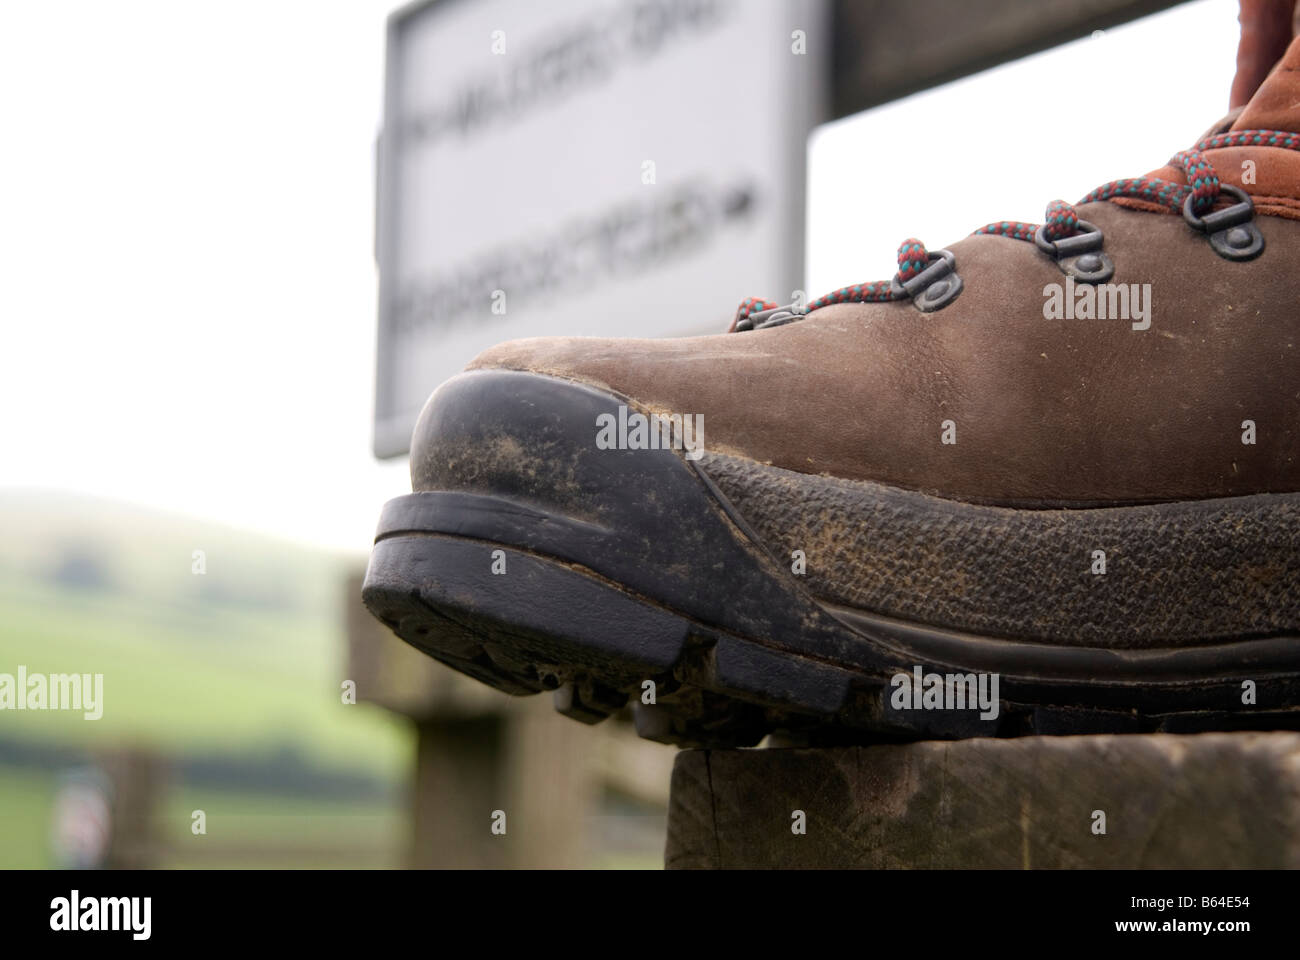 walking boot on a style in the Peak District National Park Derbyshire visit tourist tourism Peak District National - Stock Image